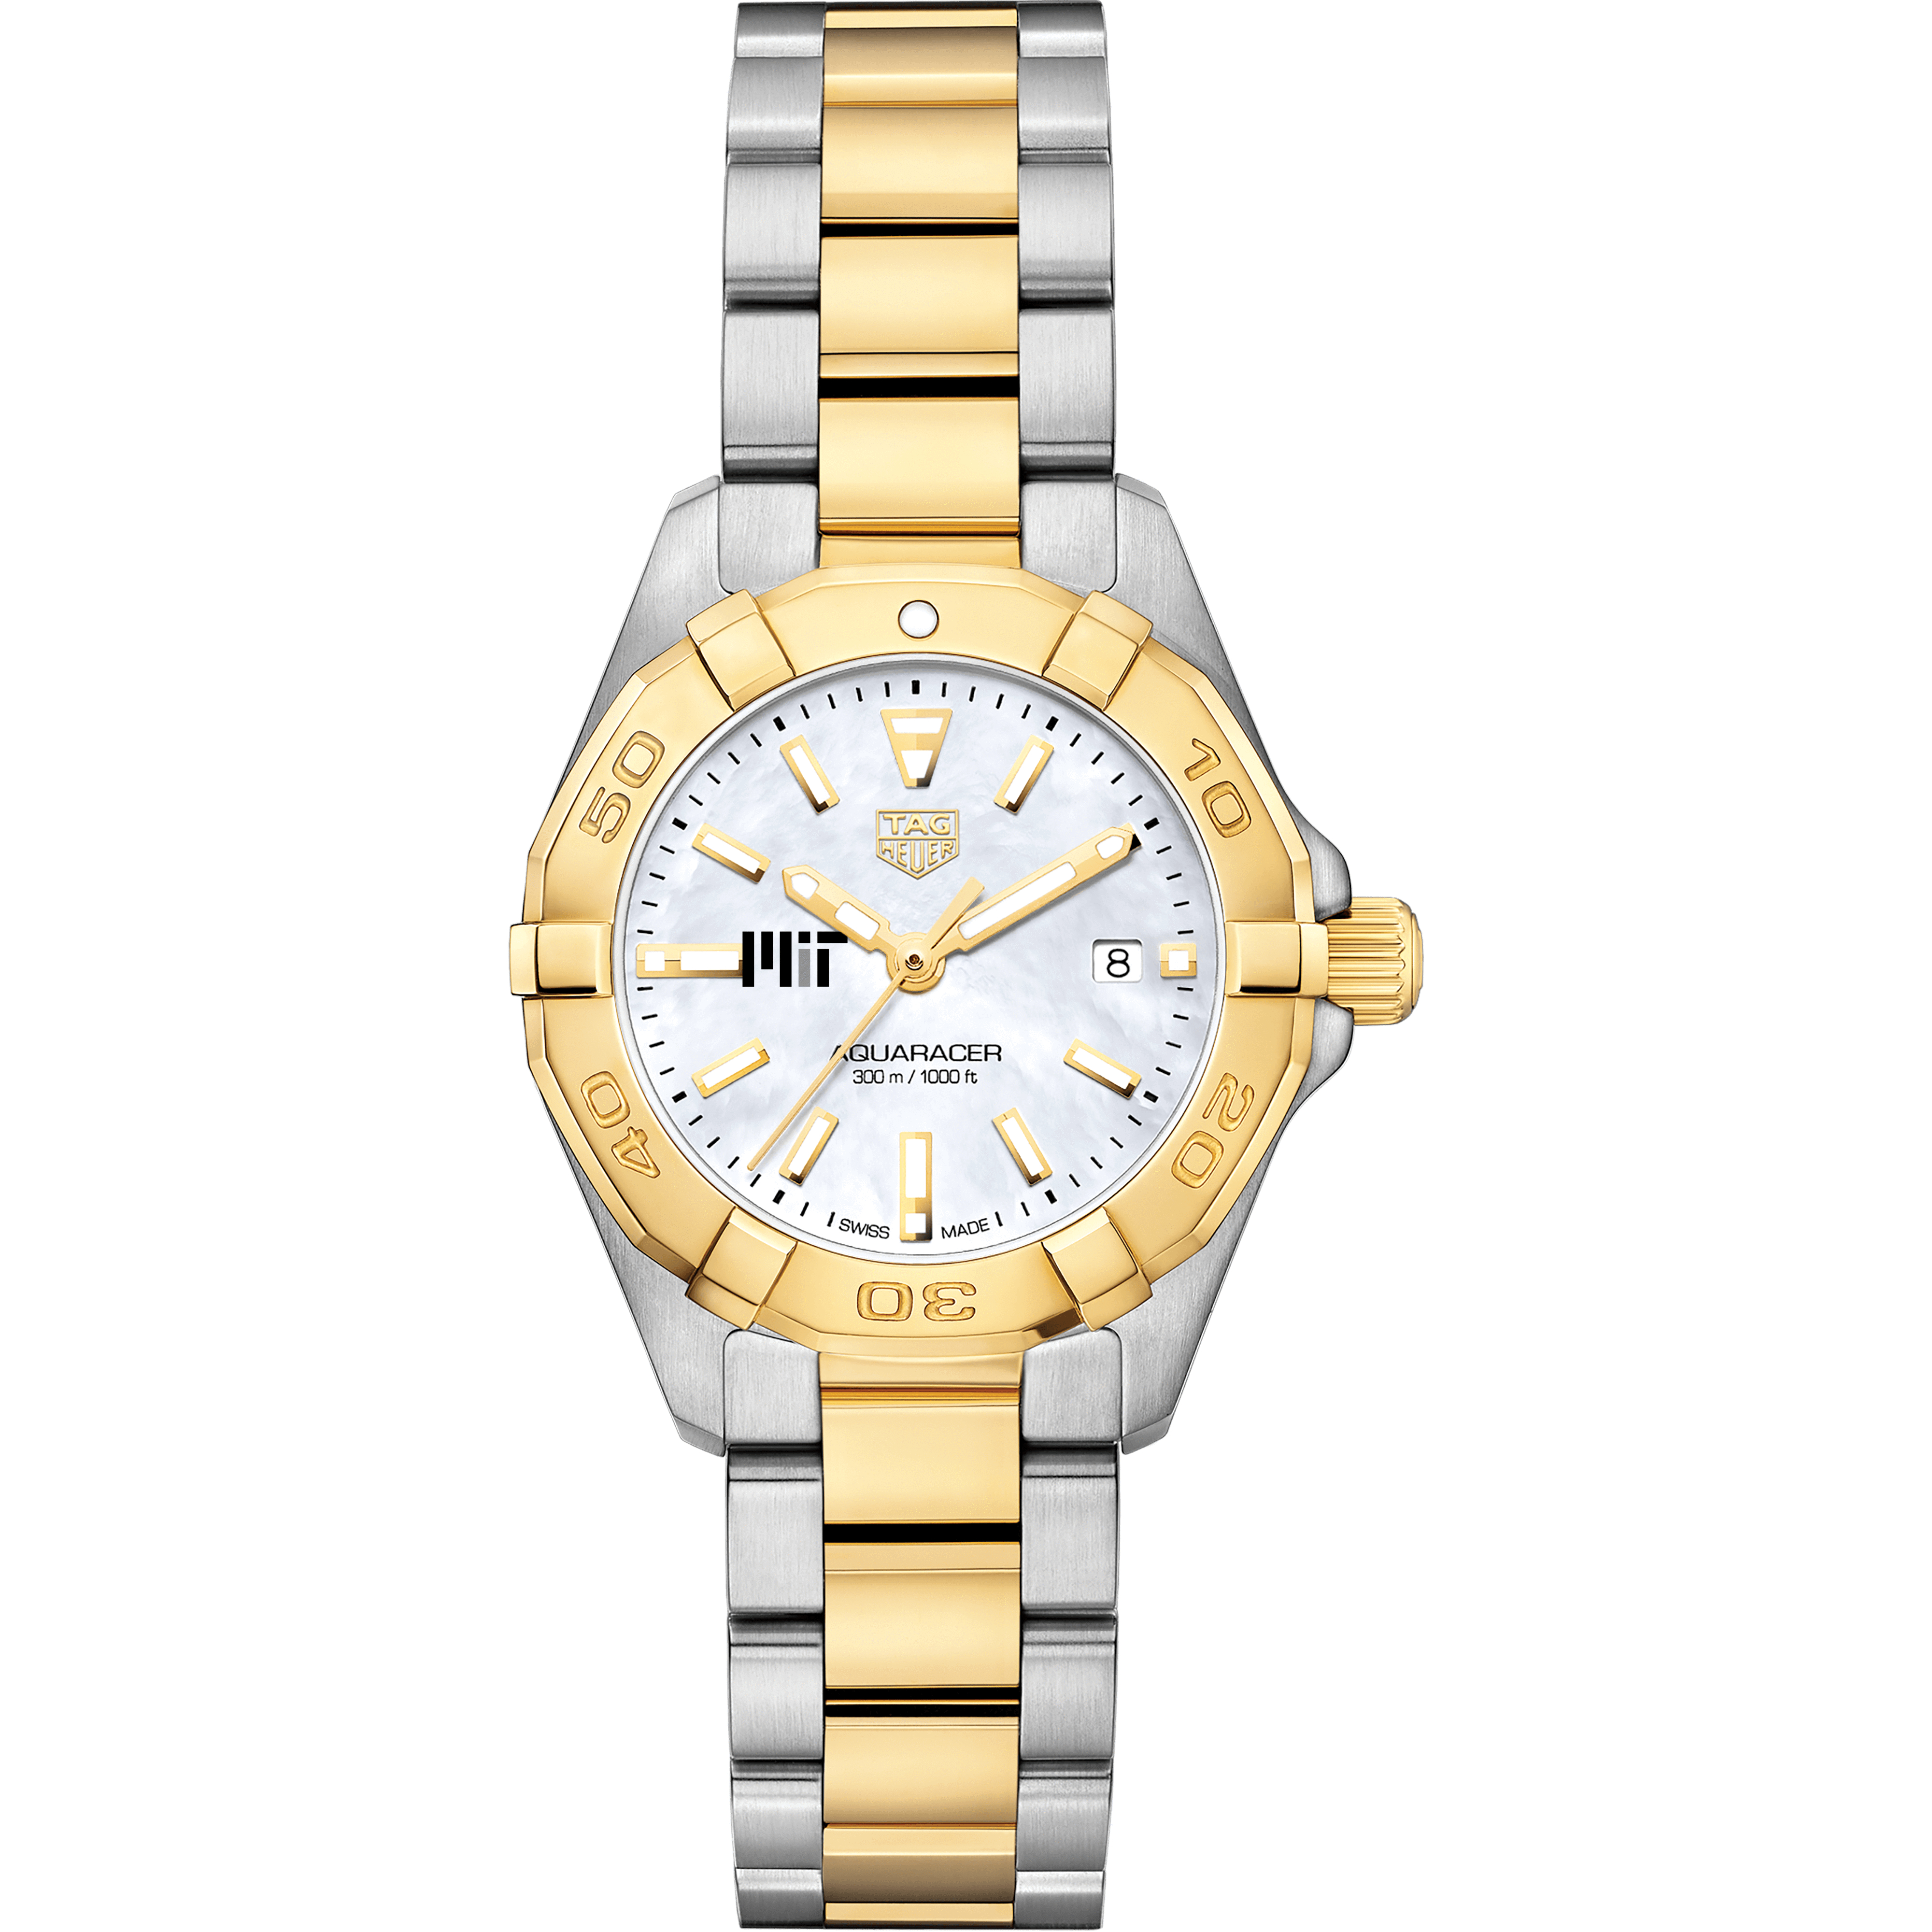 MIT TAG Heuer Two-Tone Aquaracer for Women - Image 2